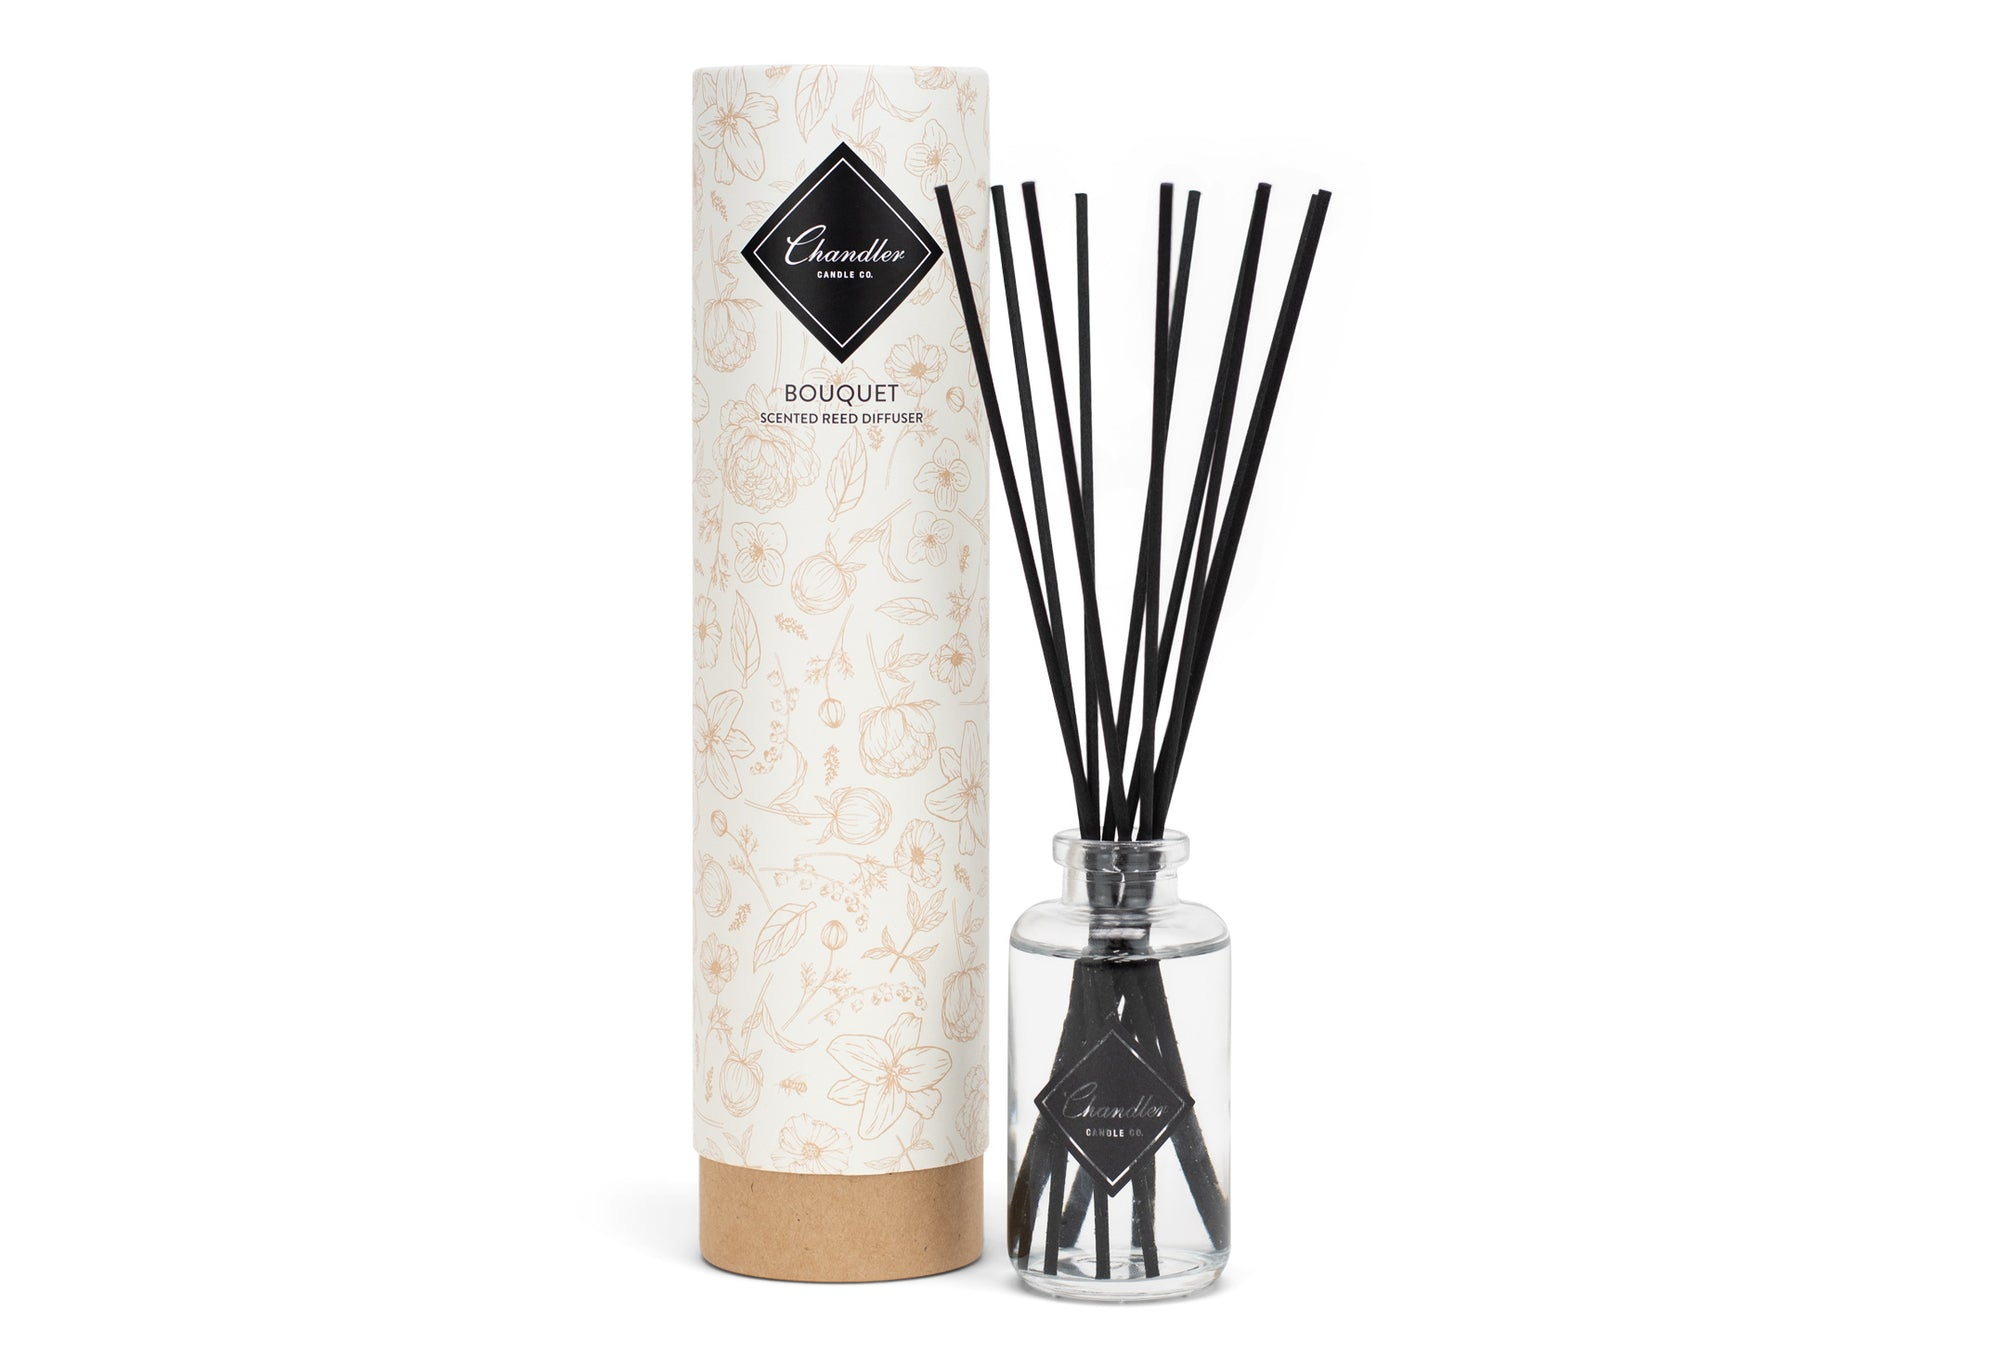 Bouquet Scented Reed Diffuser